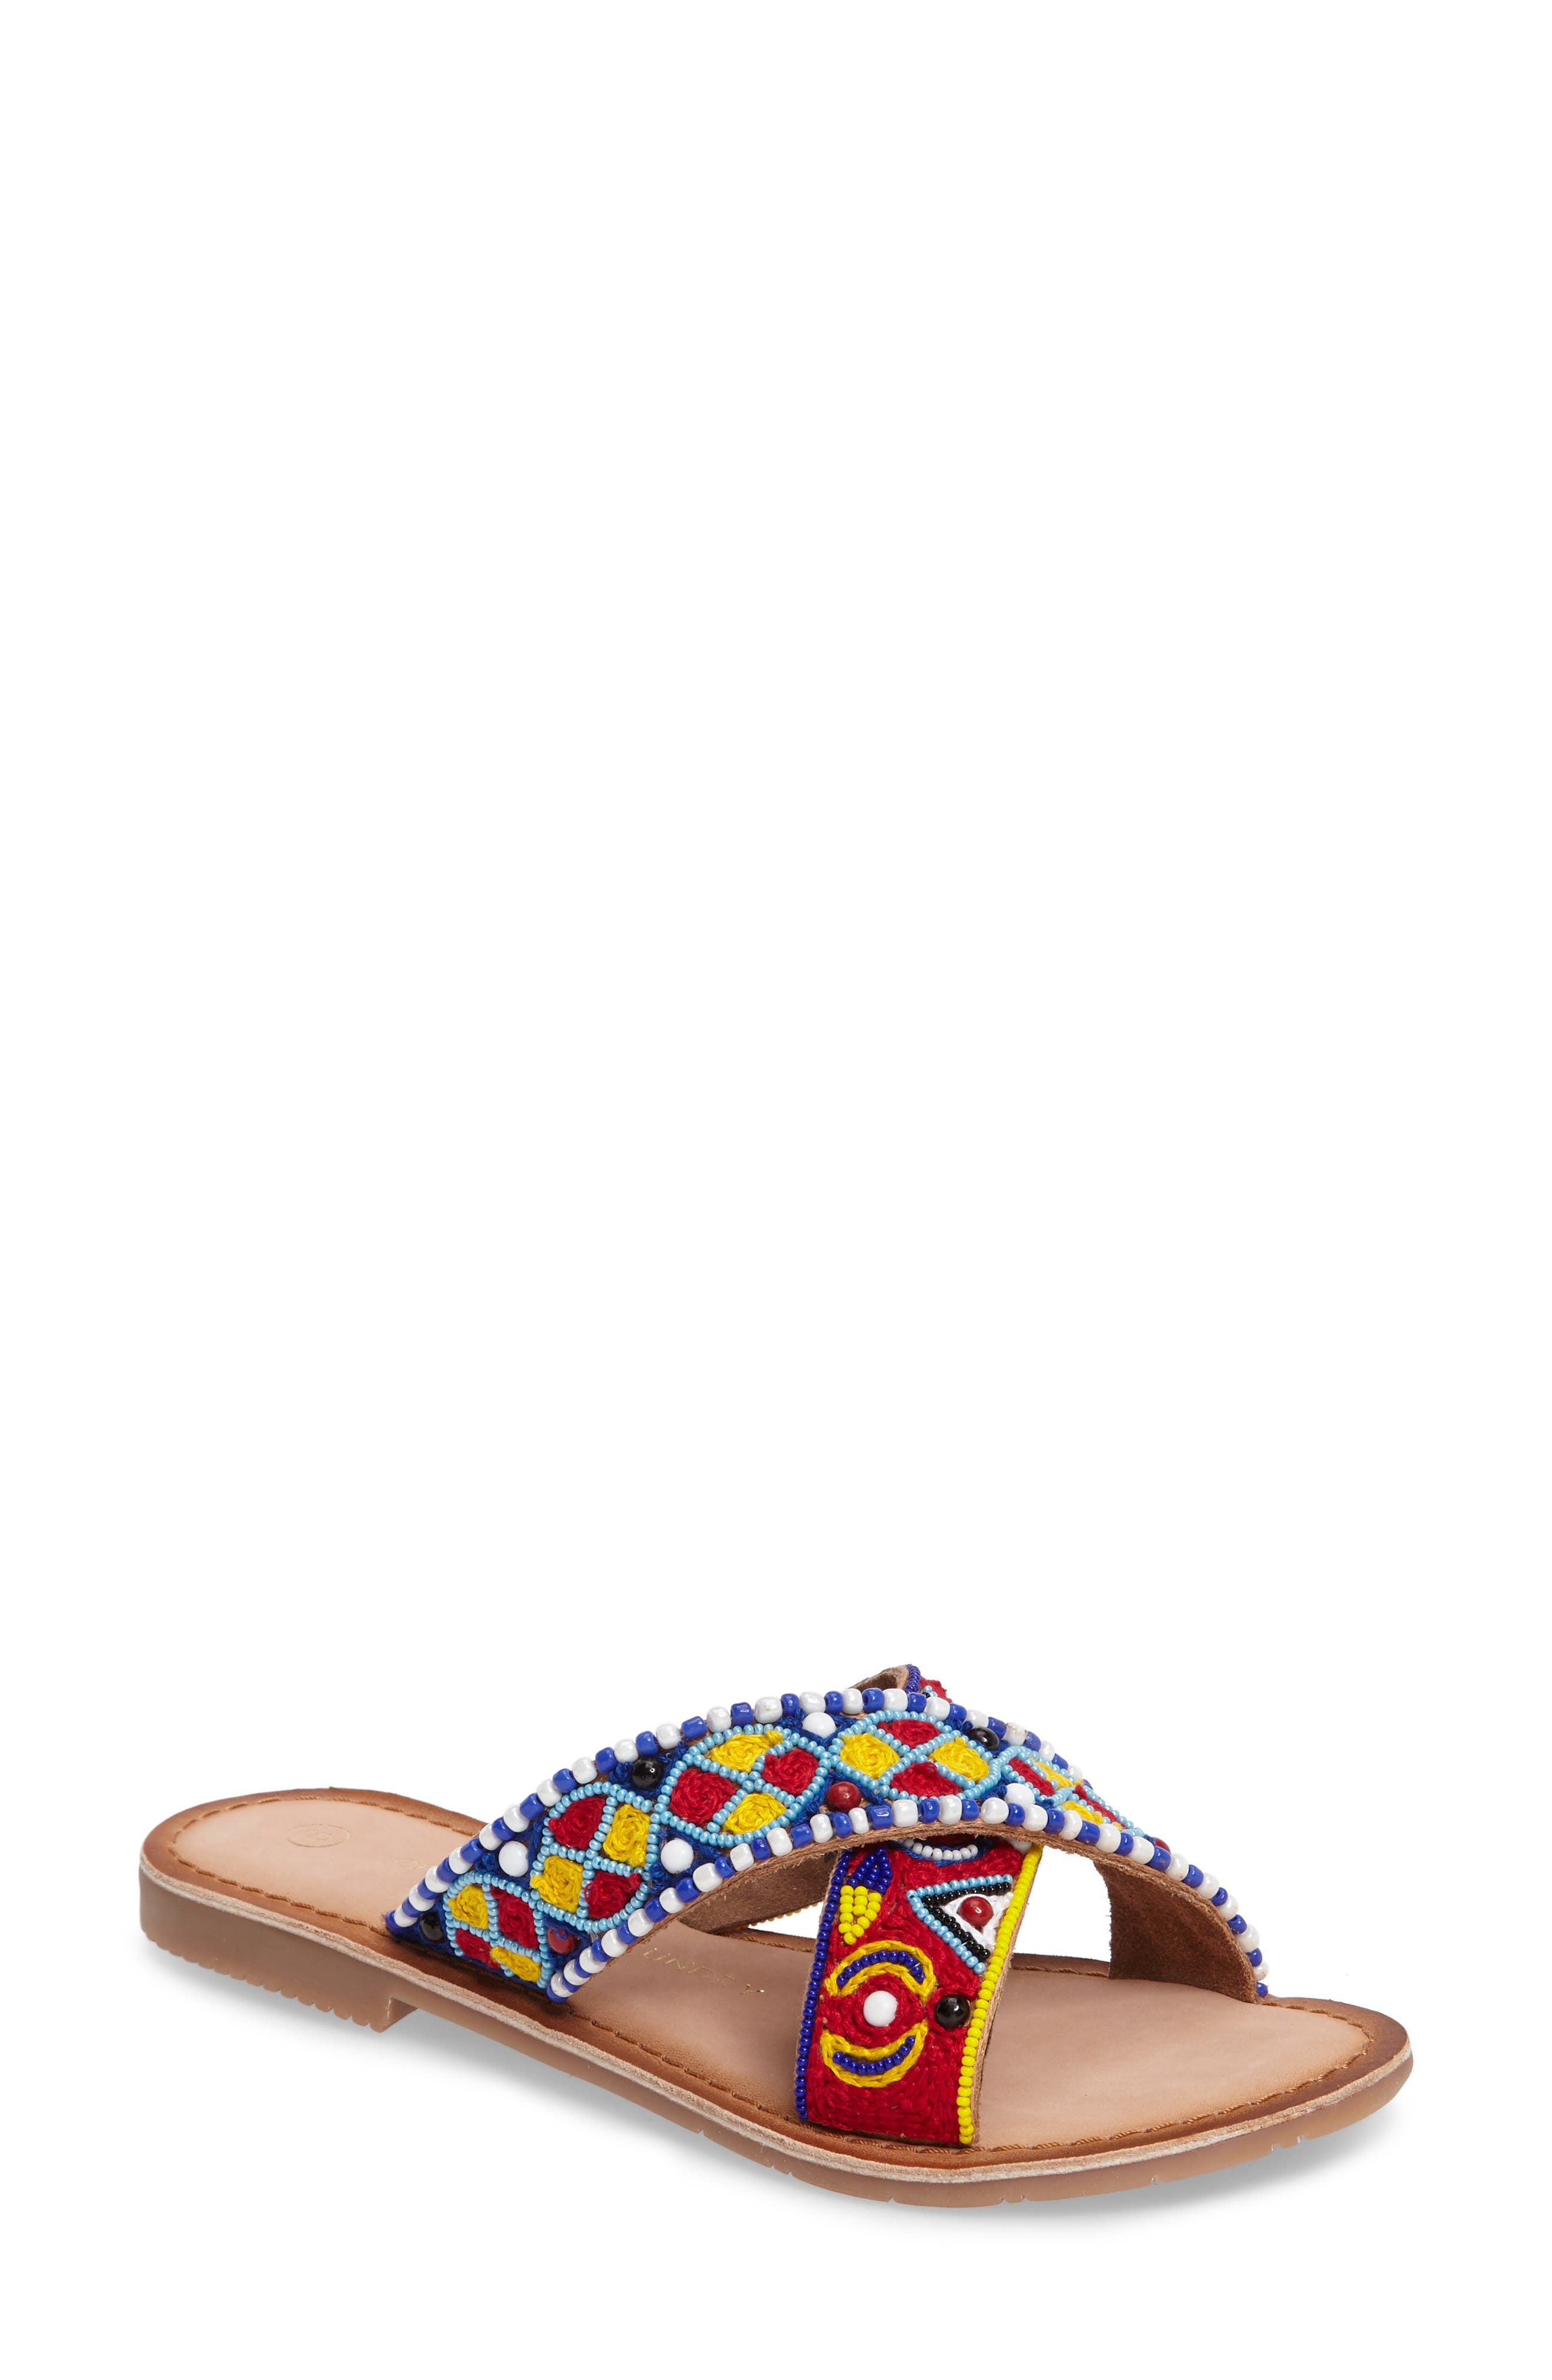 Alternate Image 1 Selected - Chinese Laundry Purfect Slide Sandal (Women)